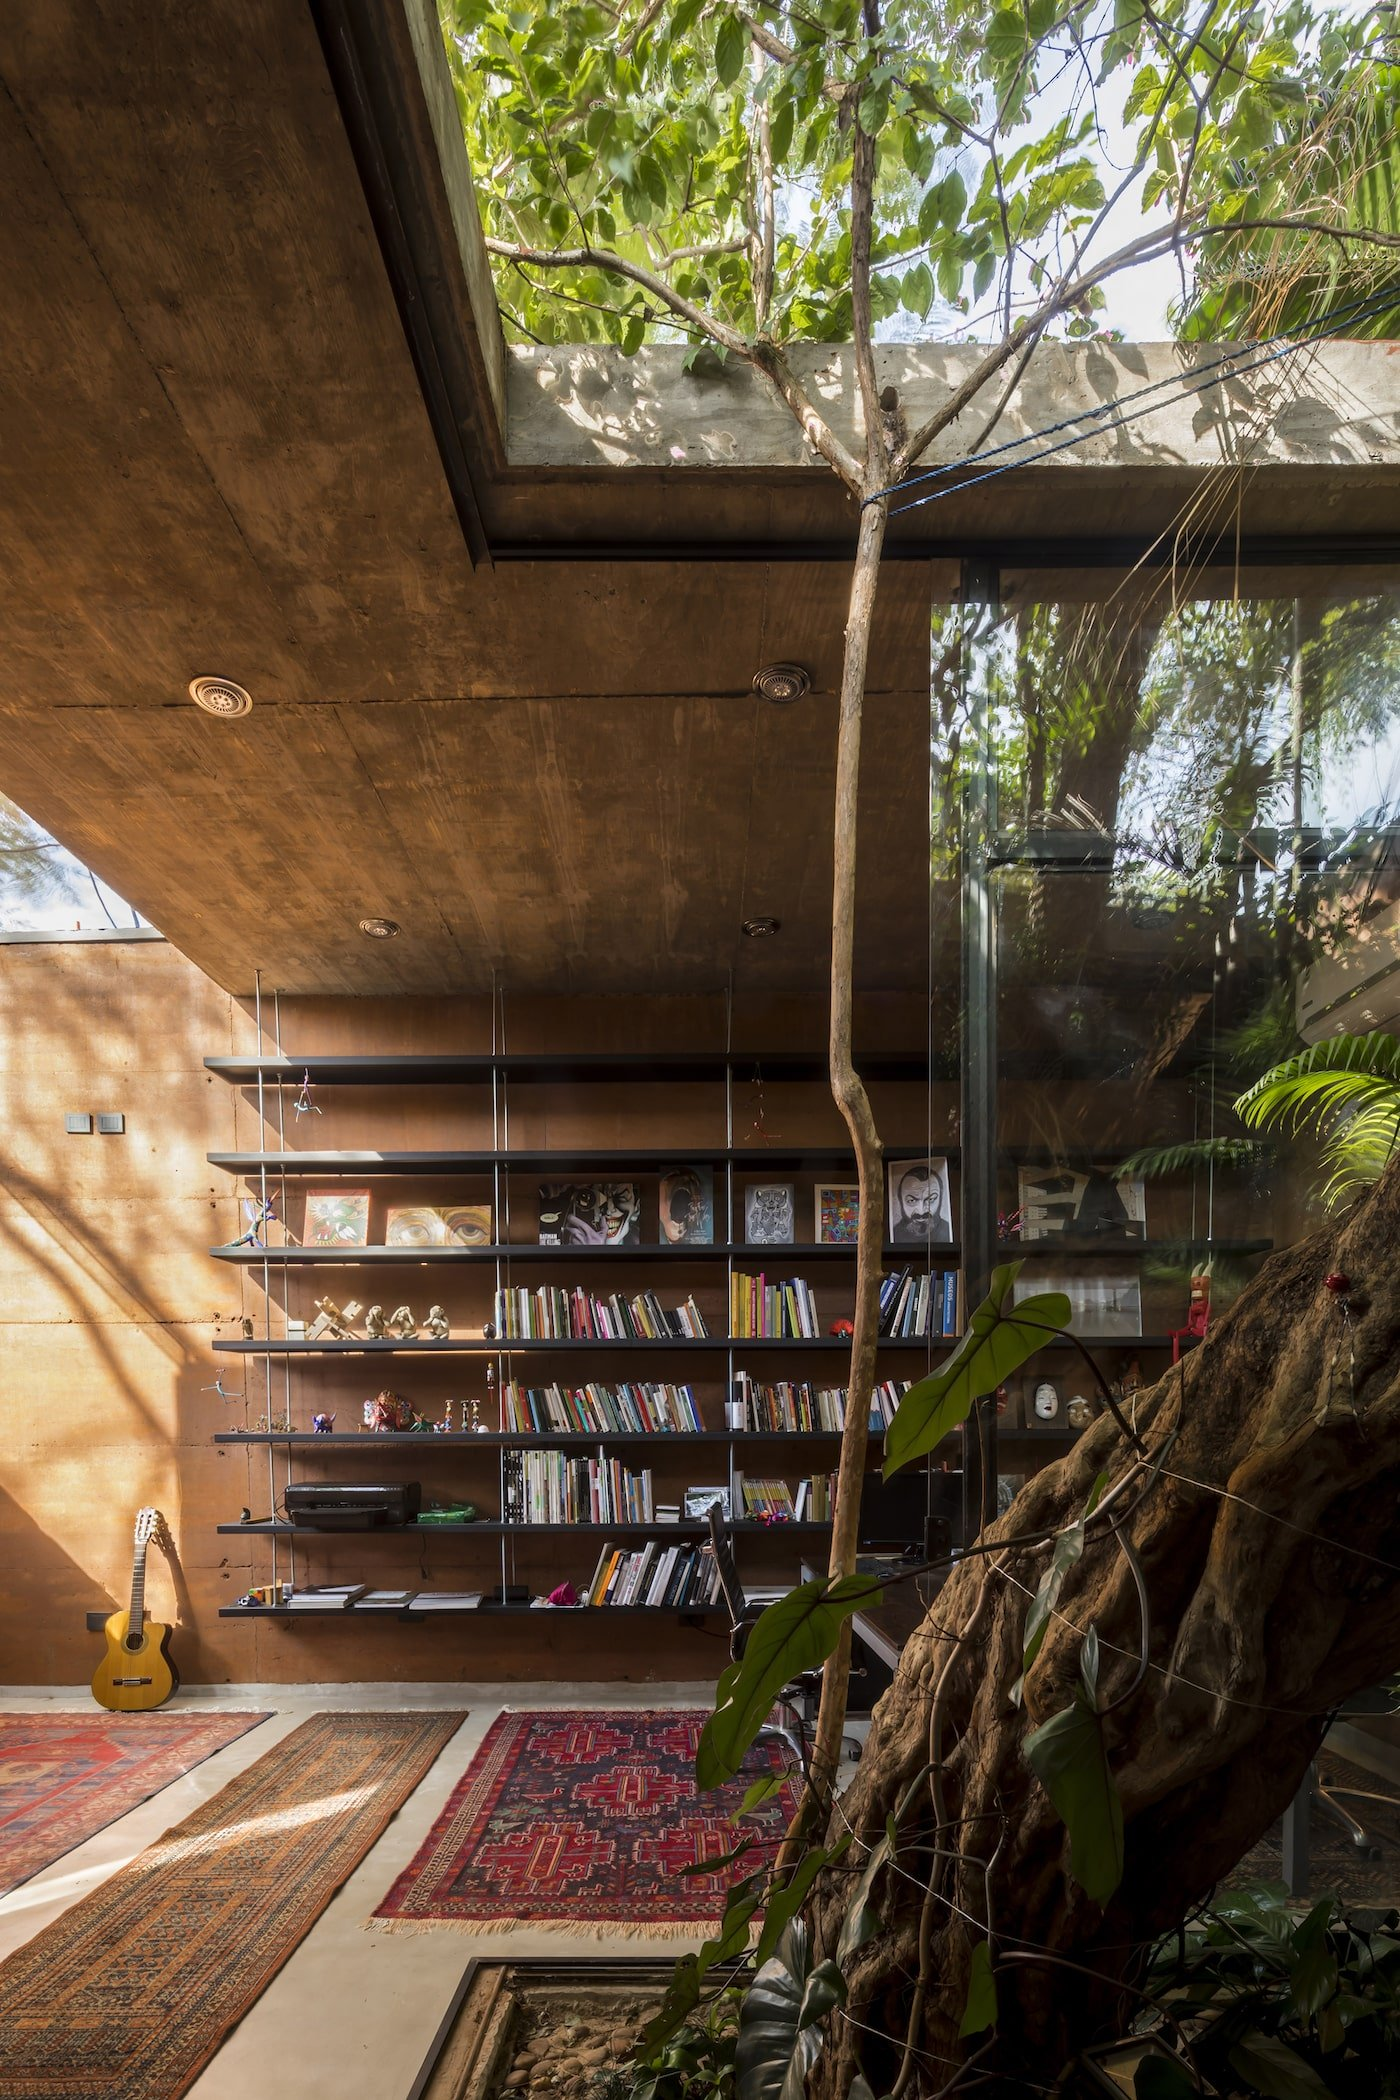 Rammed earth building with tree in light well